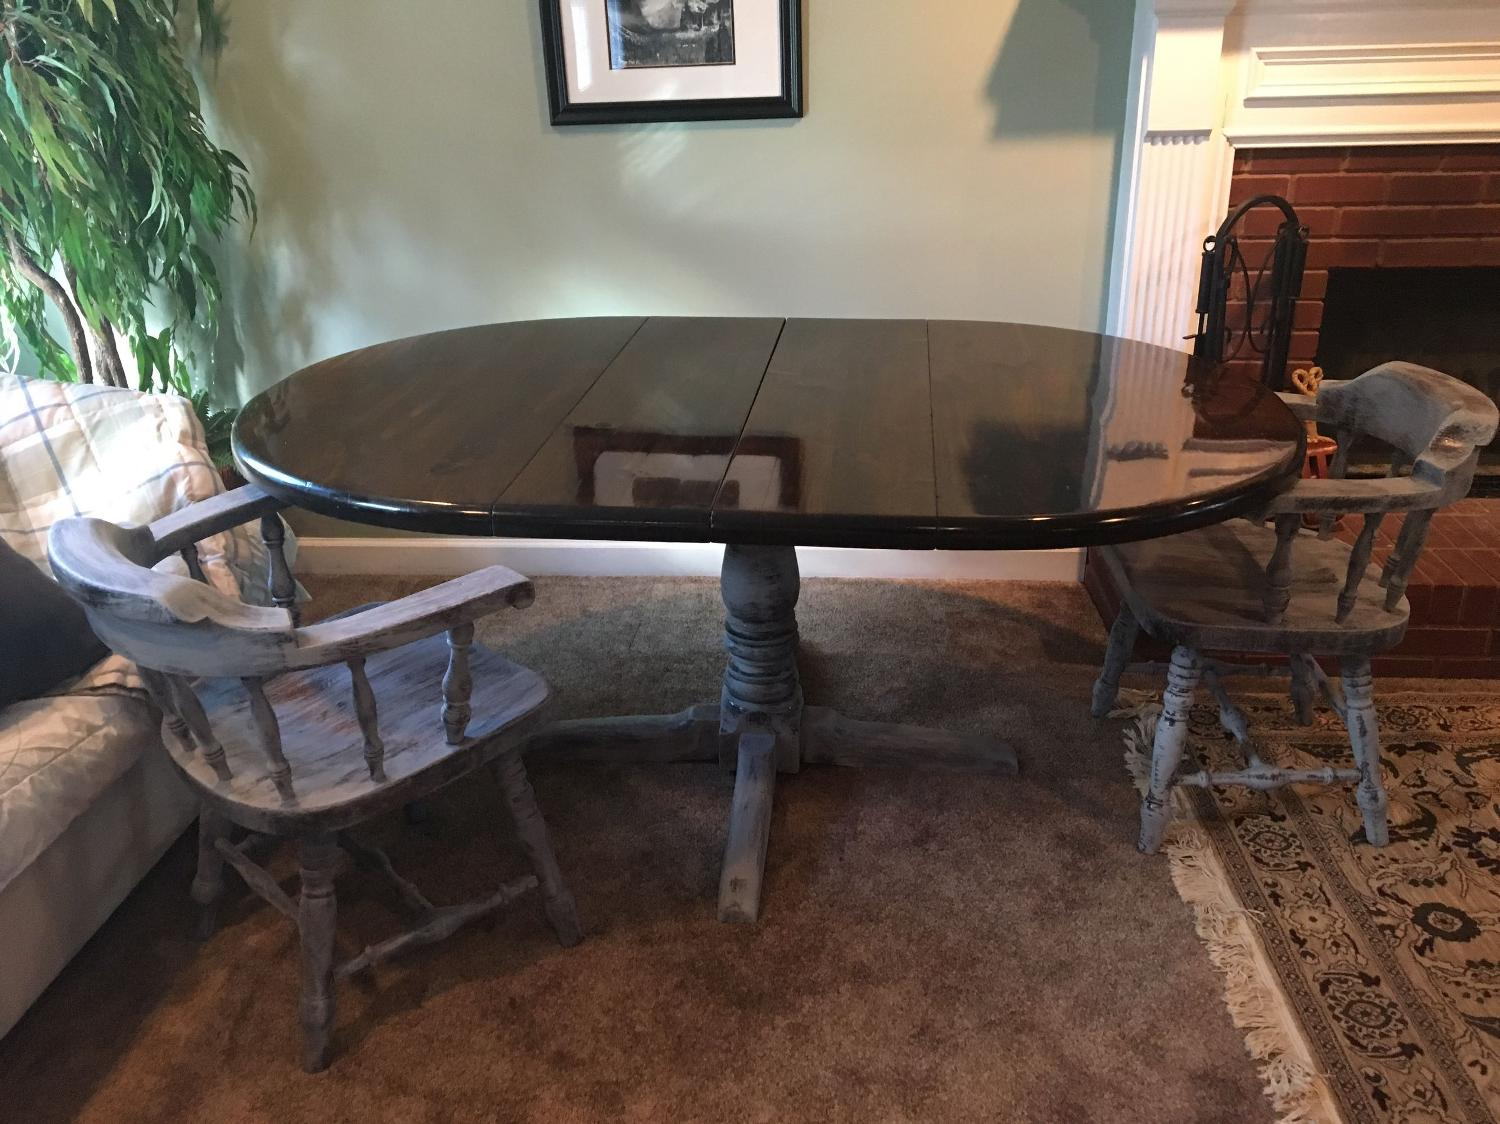 Best Shabby Chic Distressed Table And 4 Chairs For Sale In Roswell Georgia For 2018